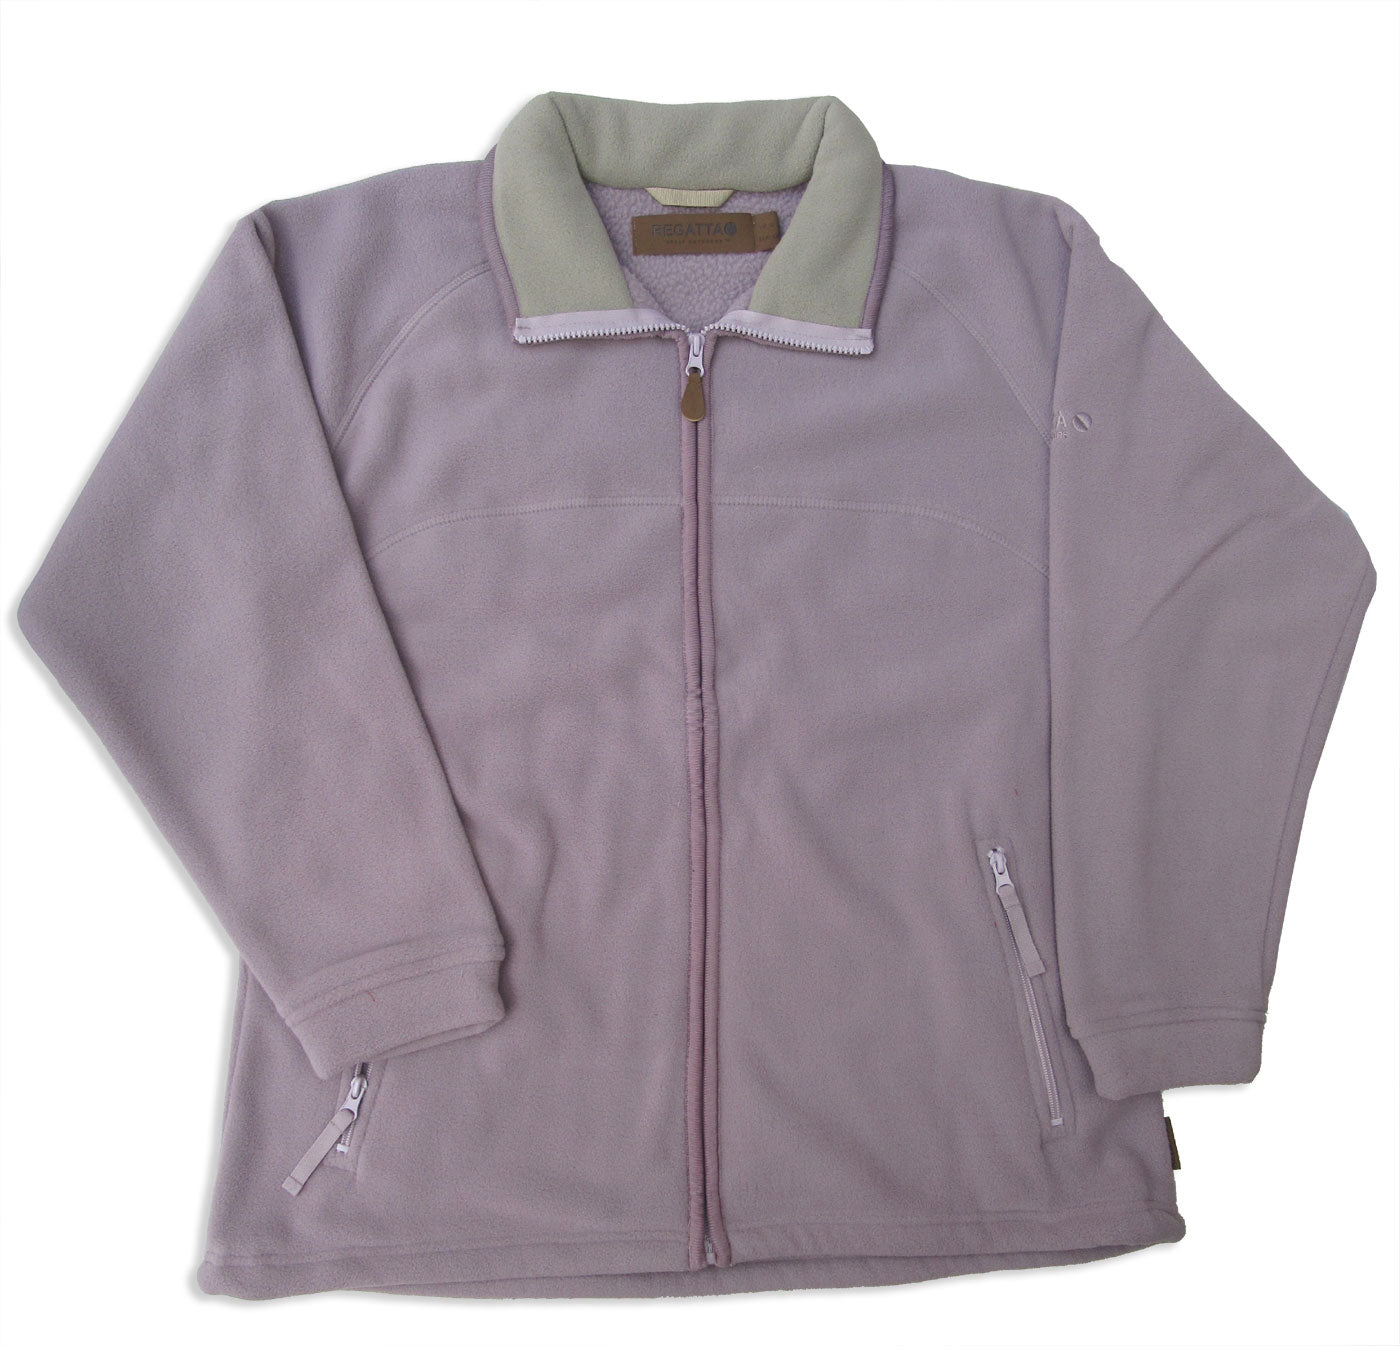 Regatta Julianne Ladies Fleece heaterh pink